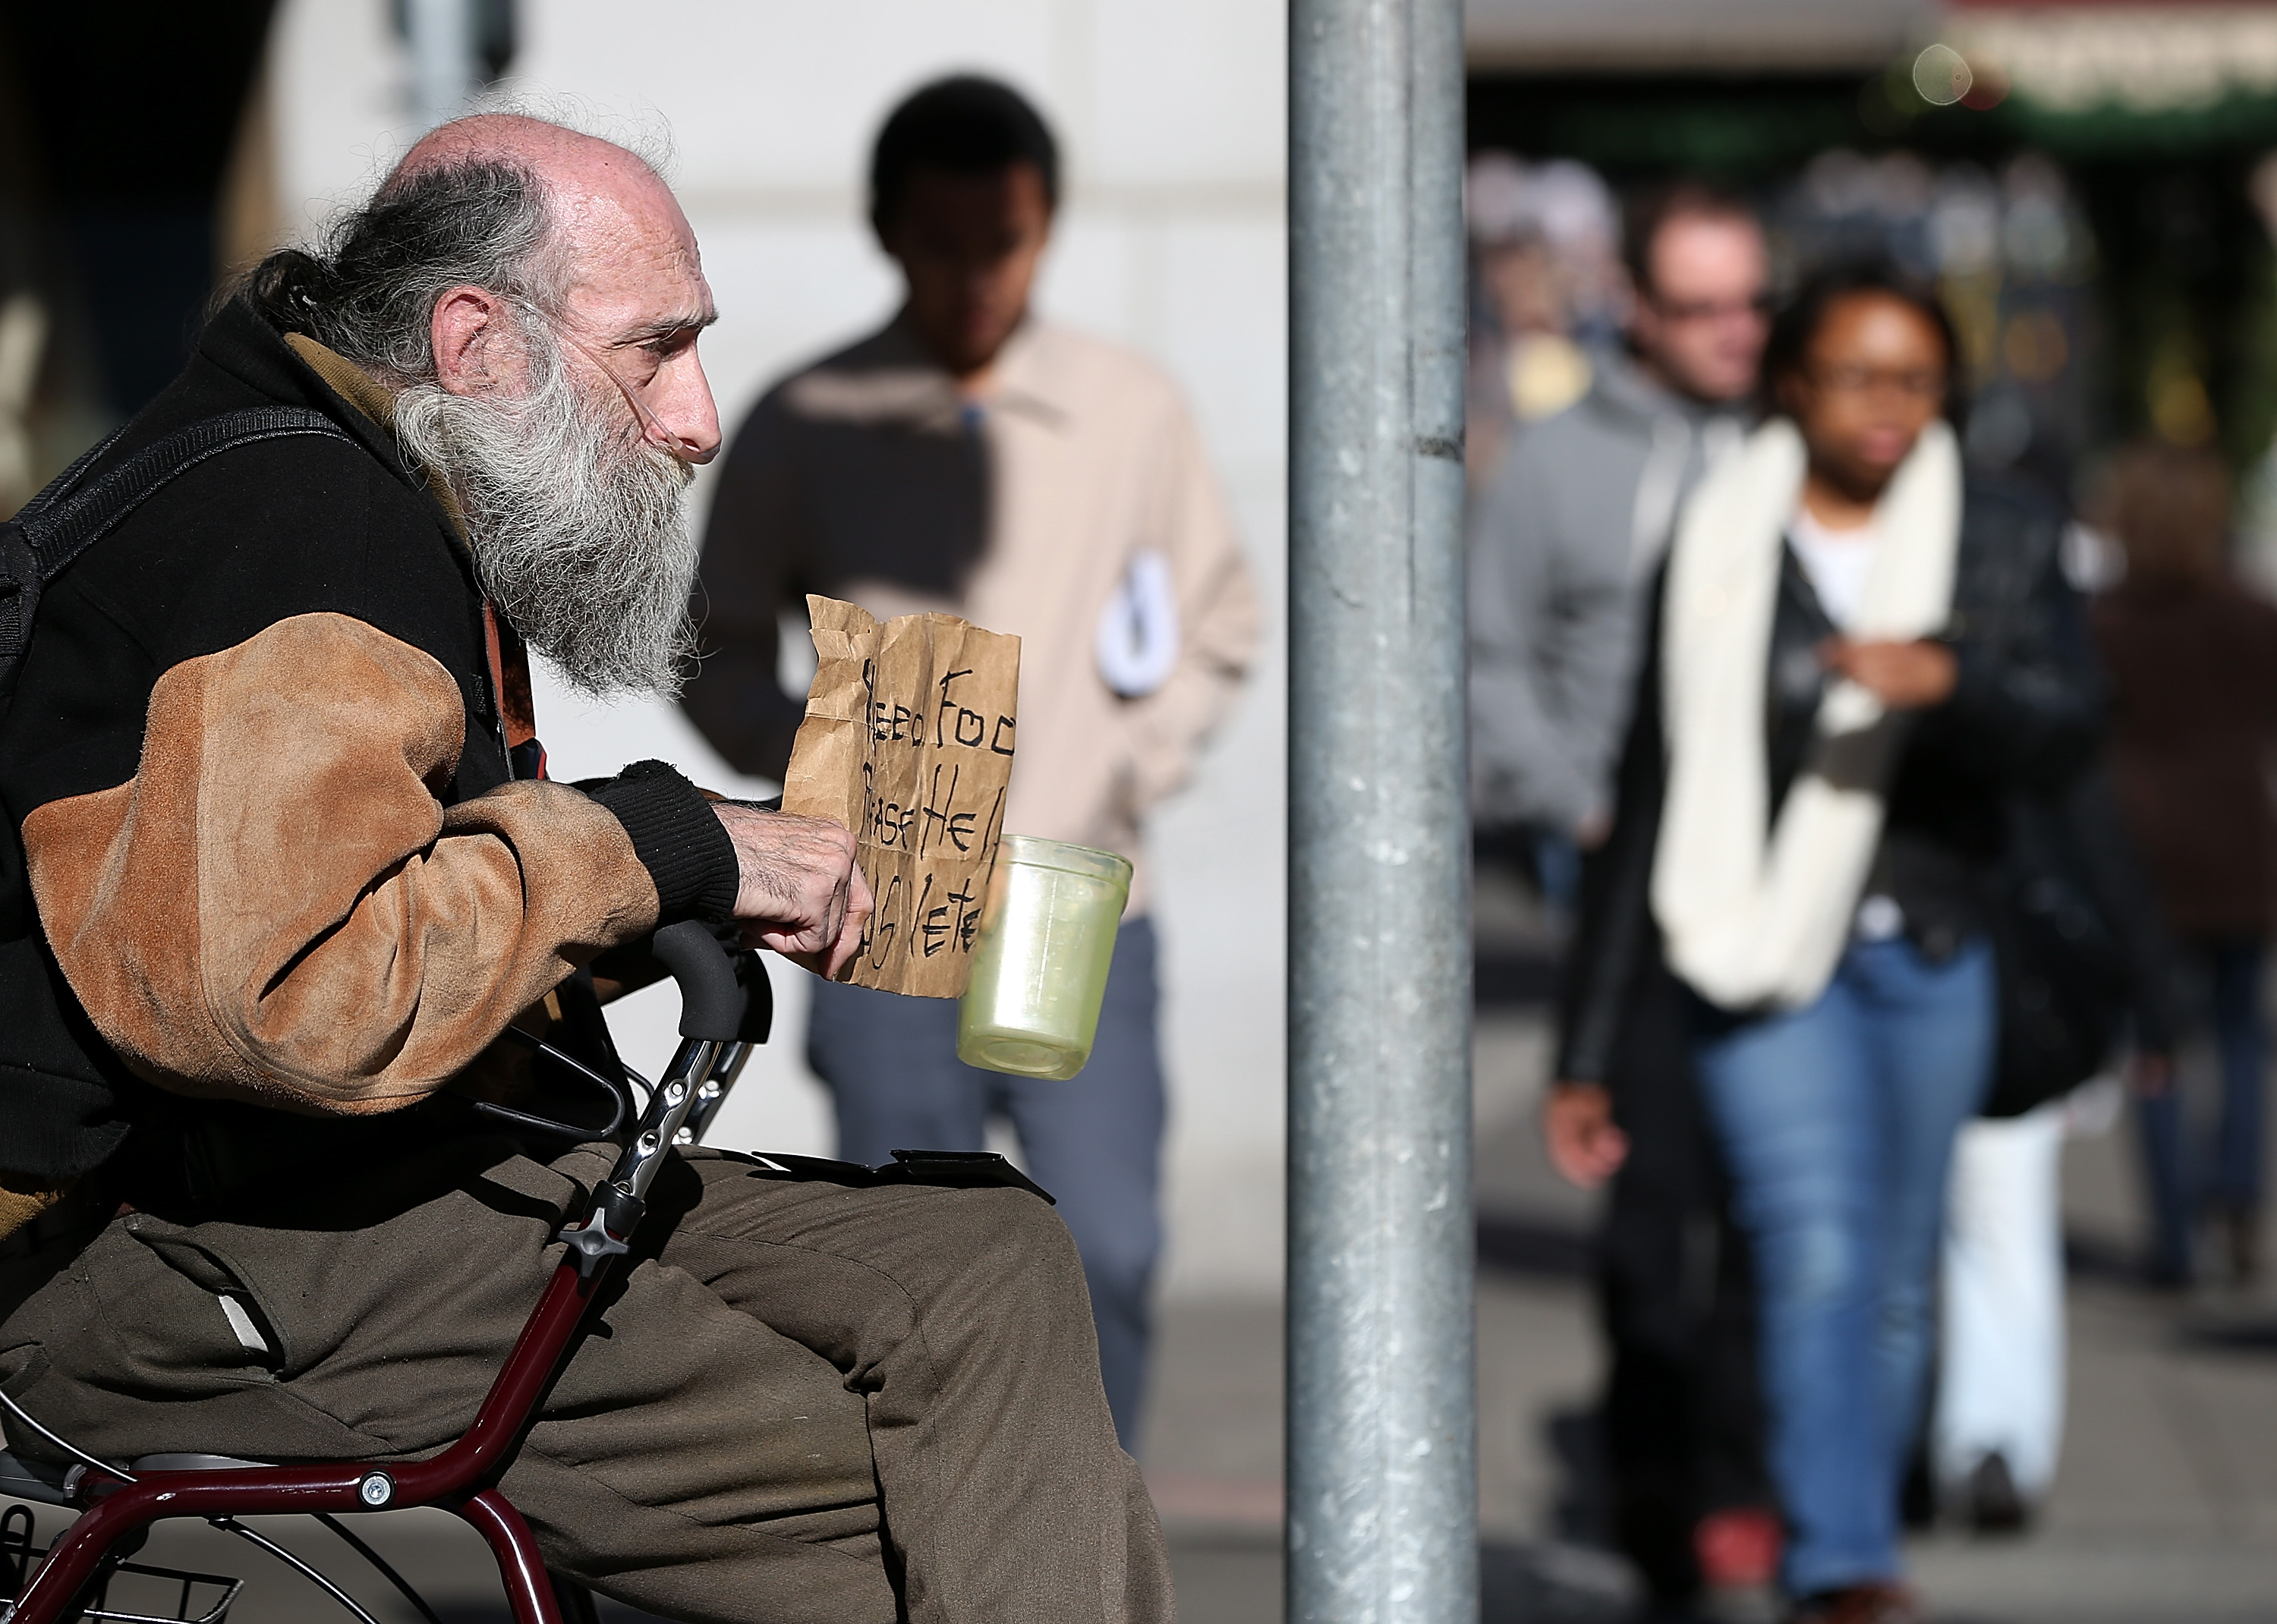 A homeless man begging for change in San Francisco.